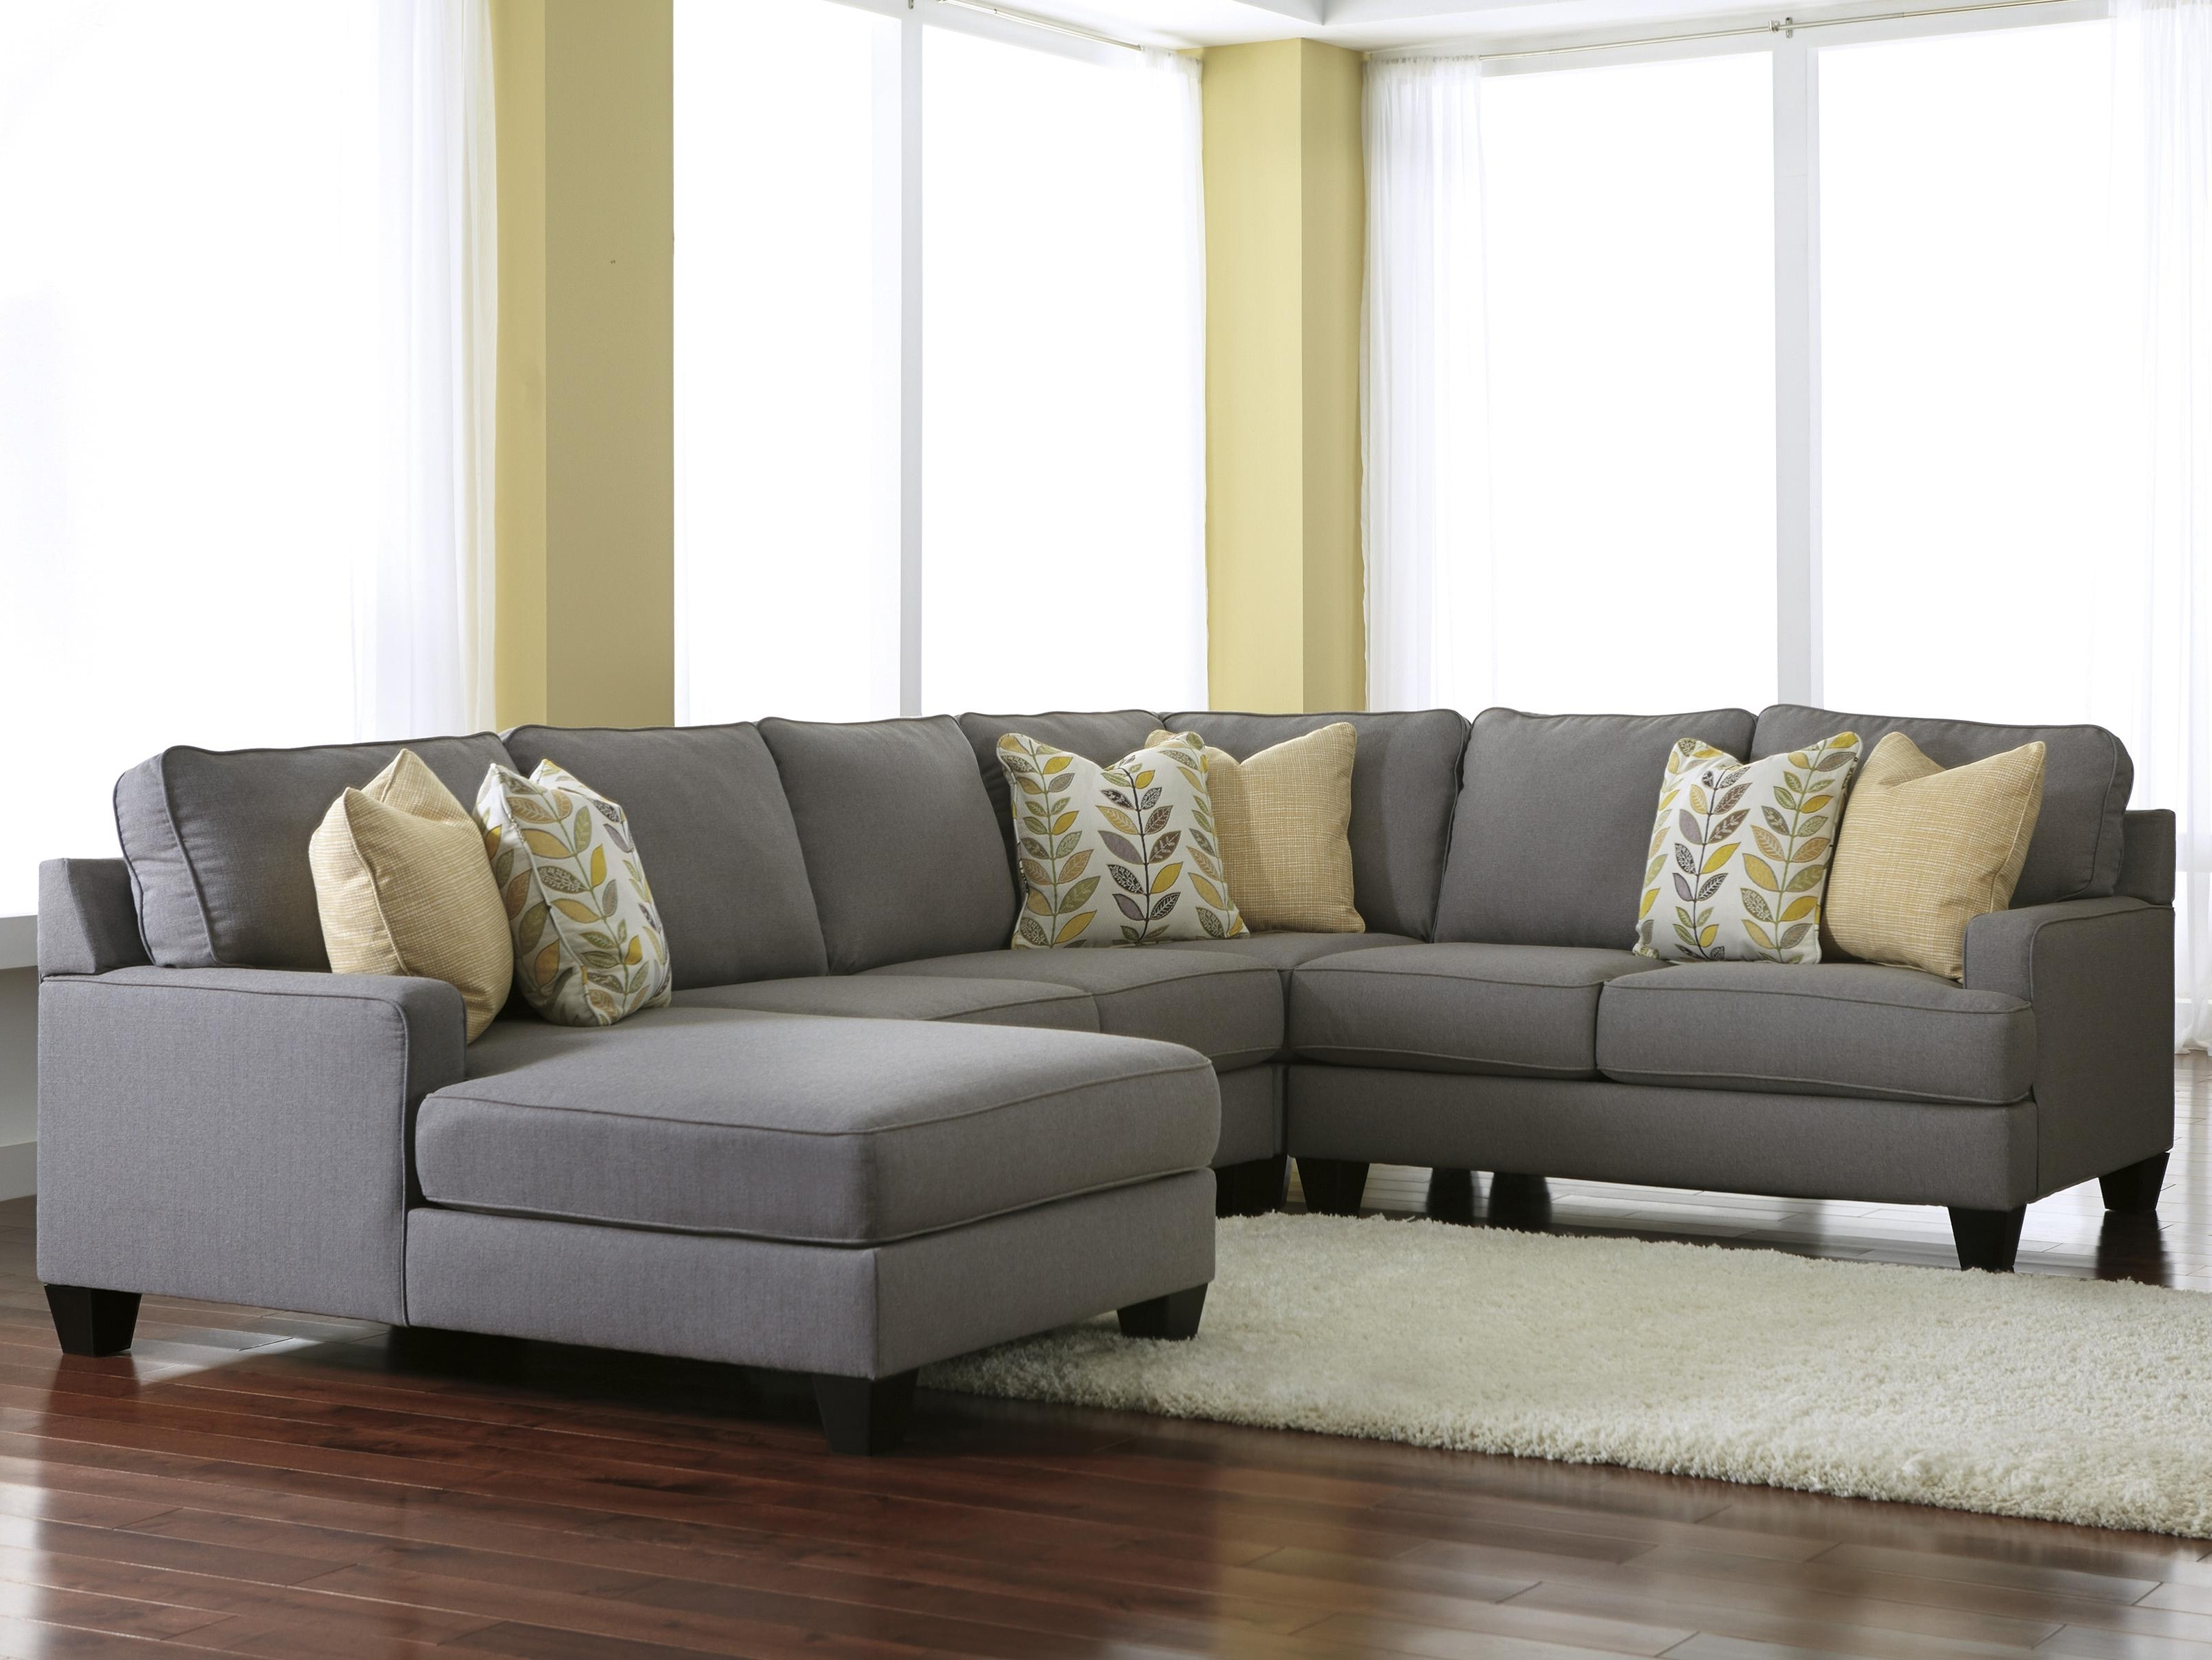 Trendy Signature Designashley Chamberly – Alloy Modern 4 Piece In 3 Piece Sectional Sofas With Chaise (View 12 of 15)